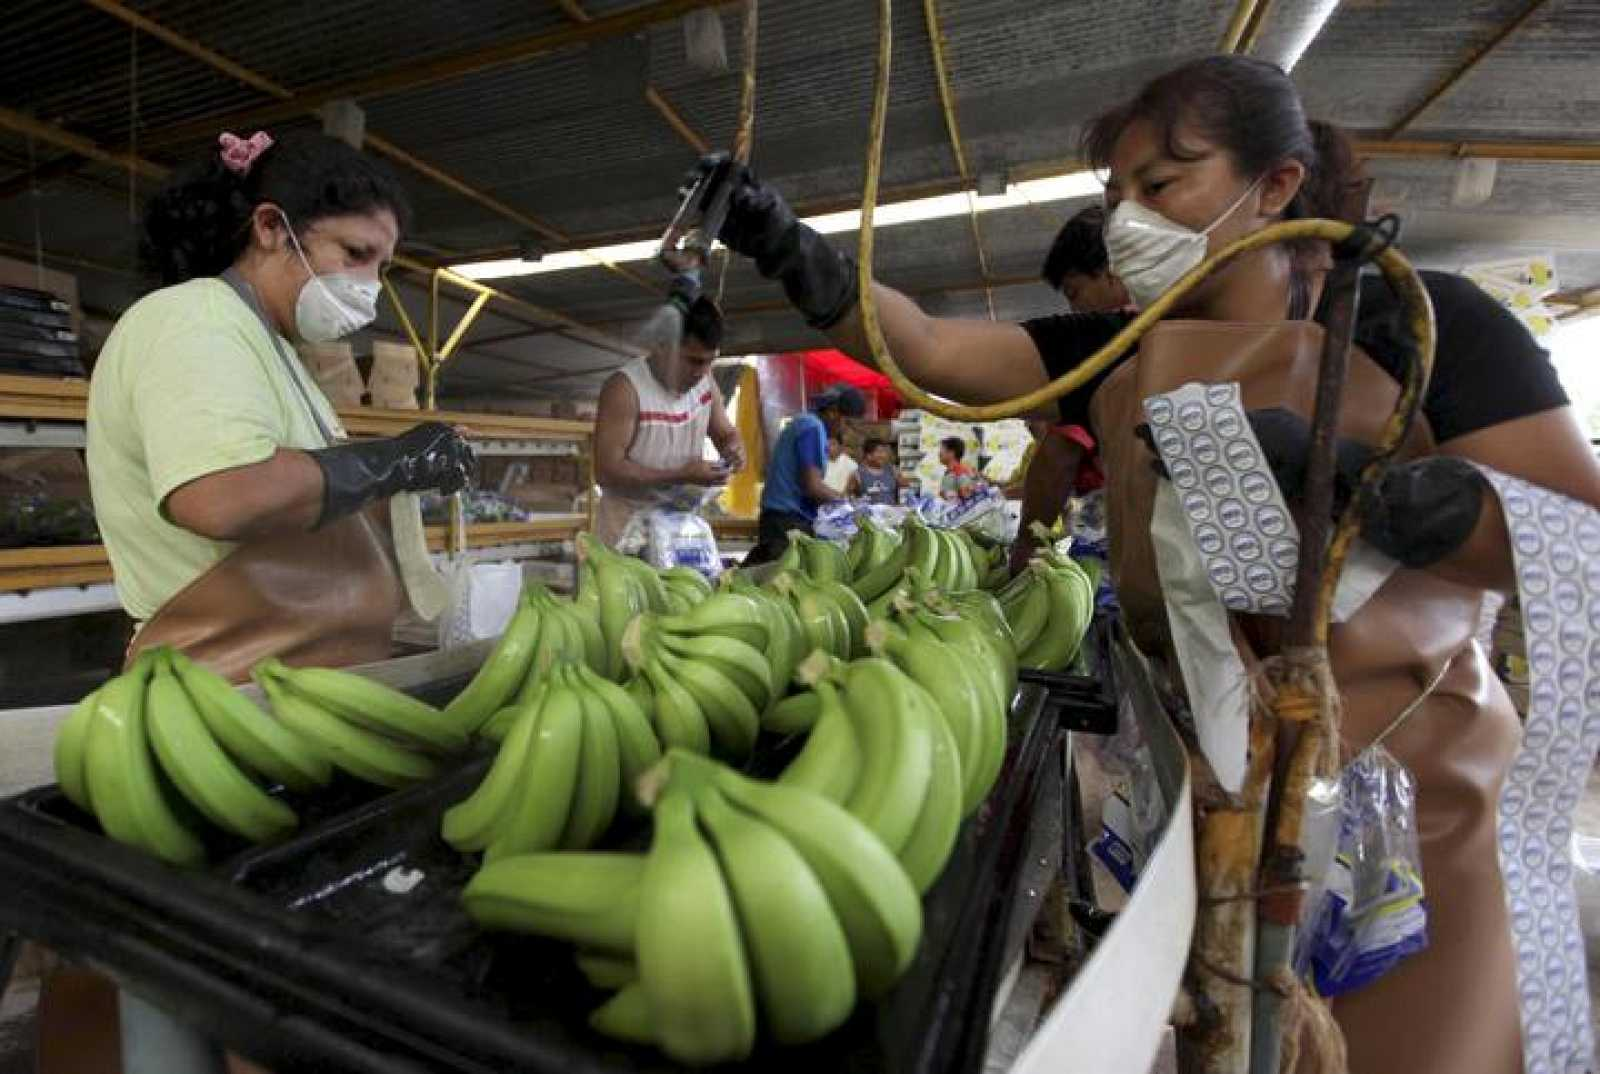 Ecuadorean workers wash bananas before packing them to be exported in Machala